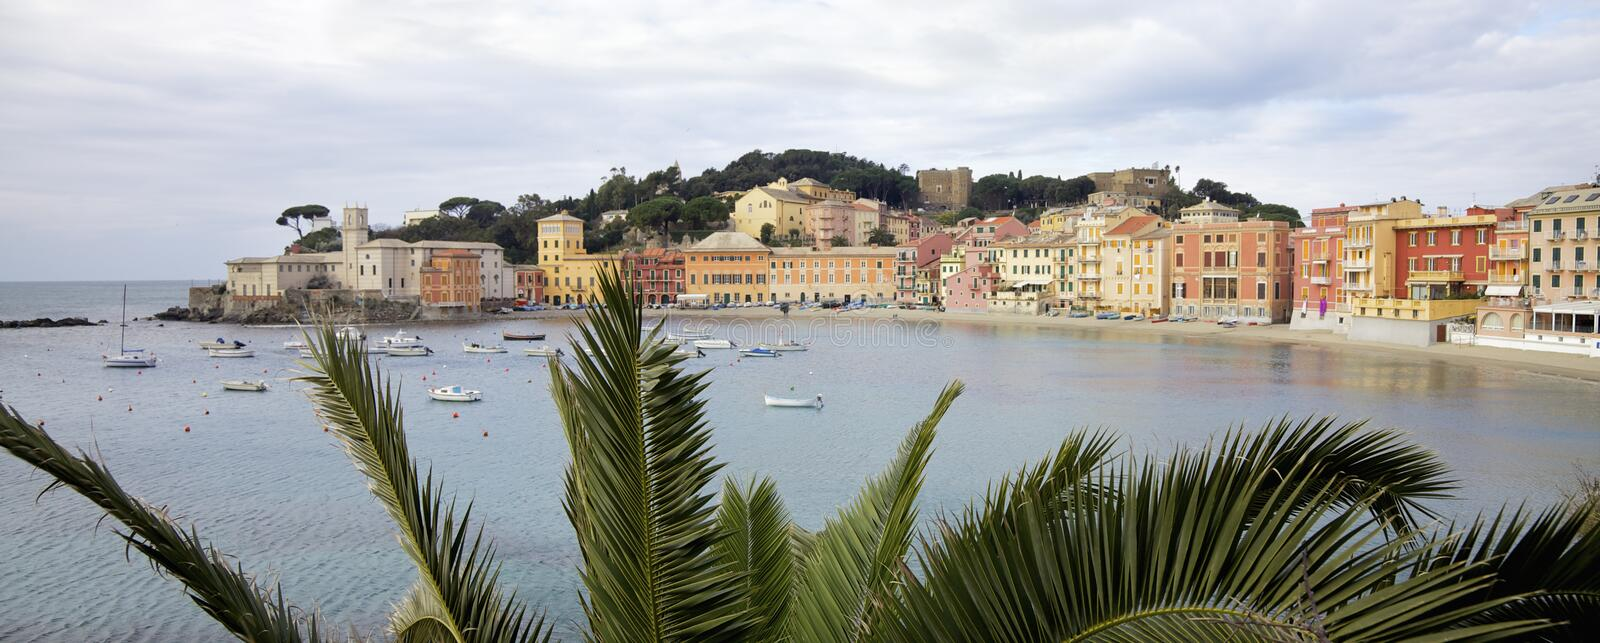 Beach named Bay of Silence in the Sestri Levante city. Italy stock images